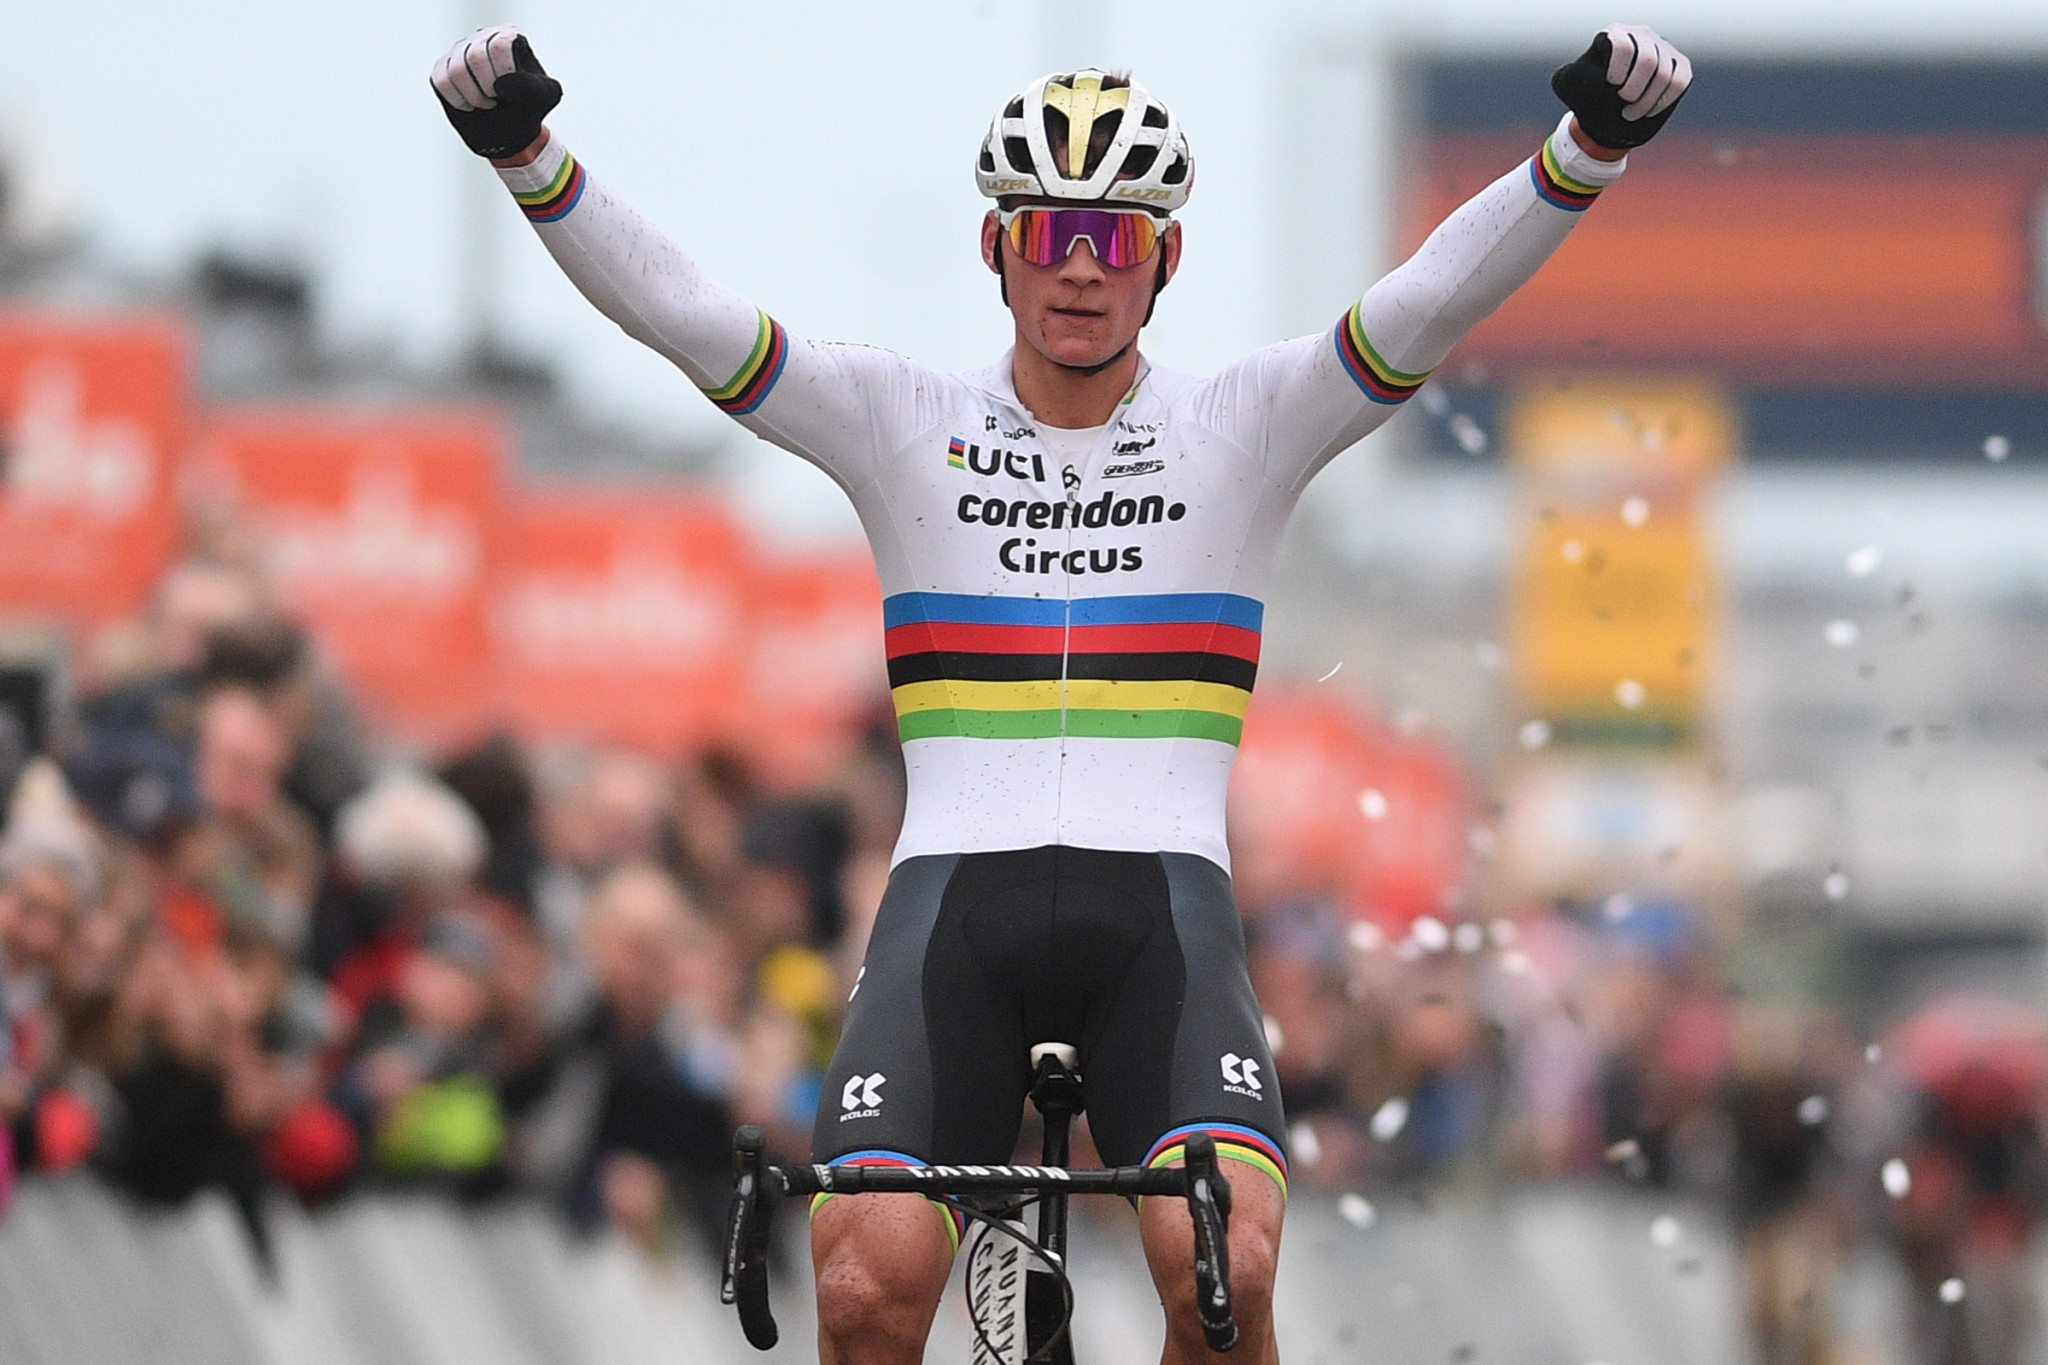 Van der Poel triumphs at UCI Cyclo-cross World Cup in Heusden-Zolder